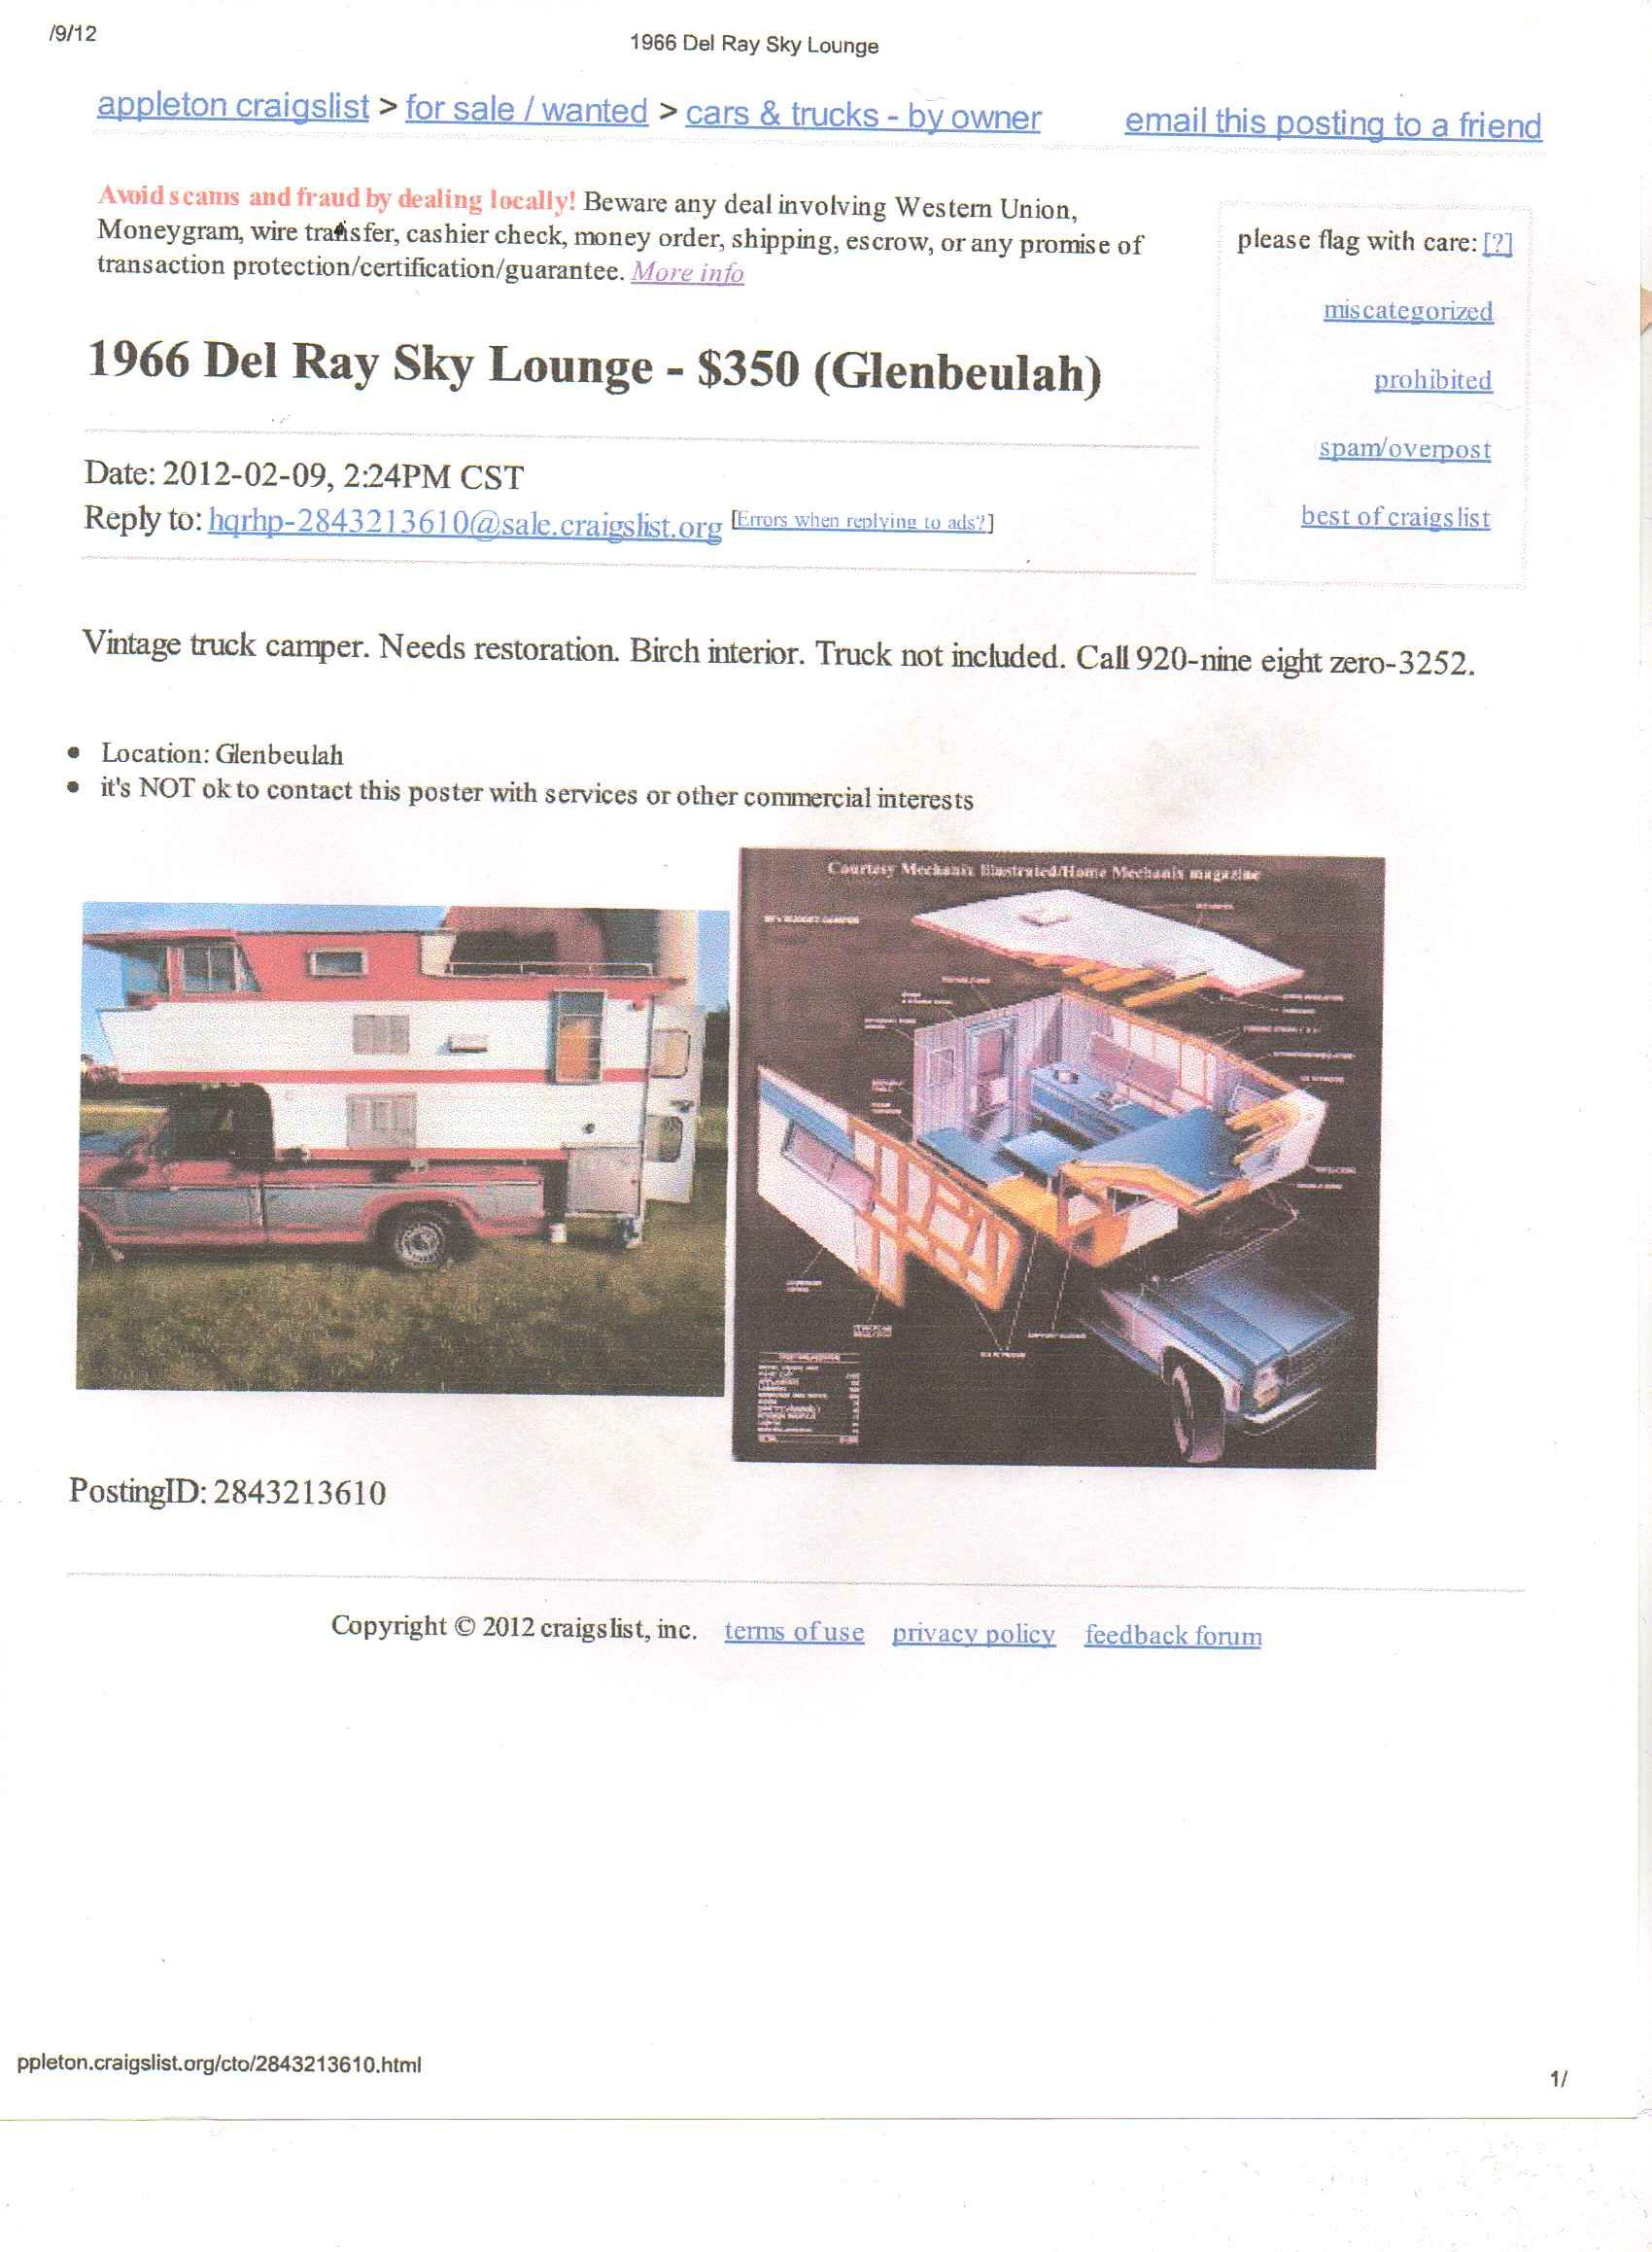 Craigslist Canon City Co The trailer is at a shipping company and ebay would call you to get payment. heraldo